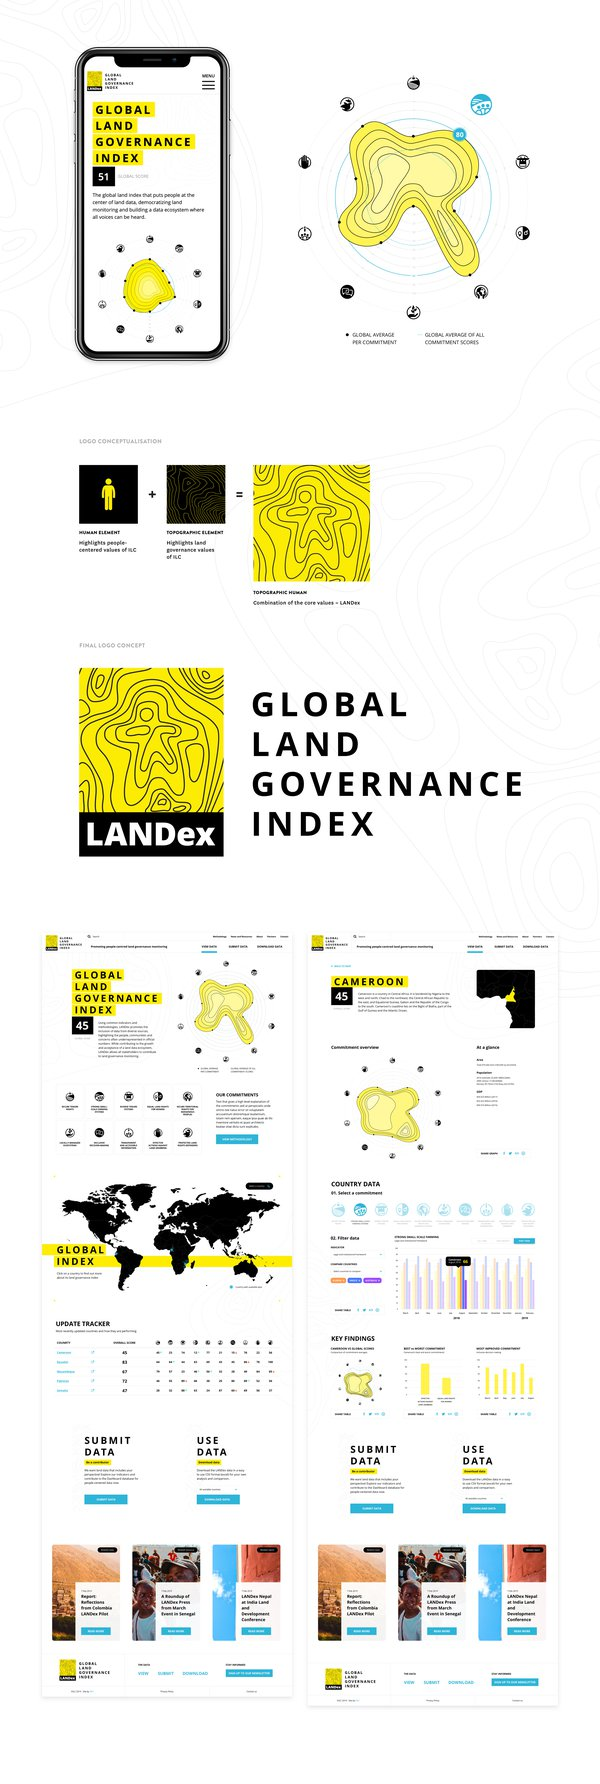 Landex Global Land Governance Index